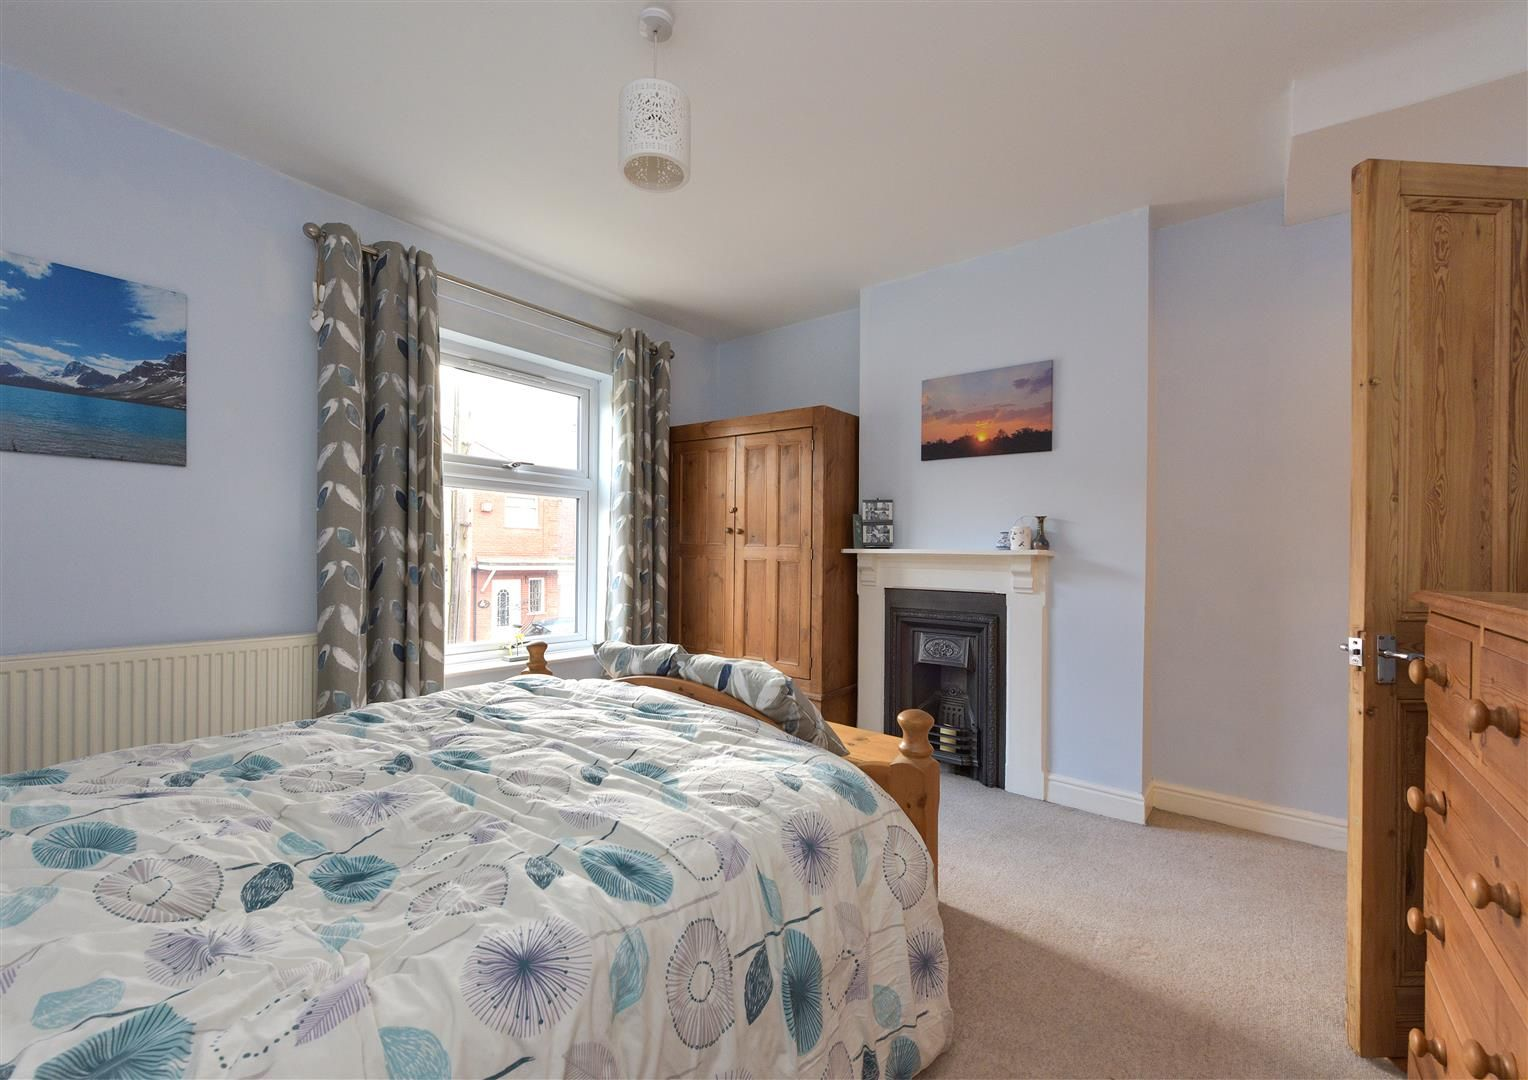 3 bed end-of-terrace for sale 10